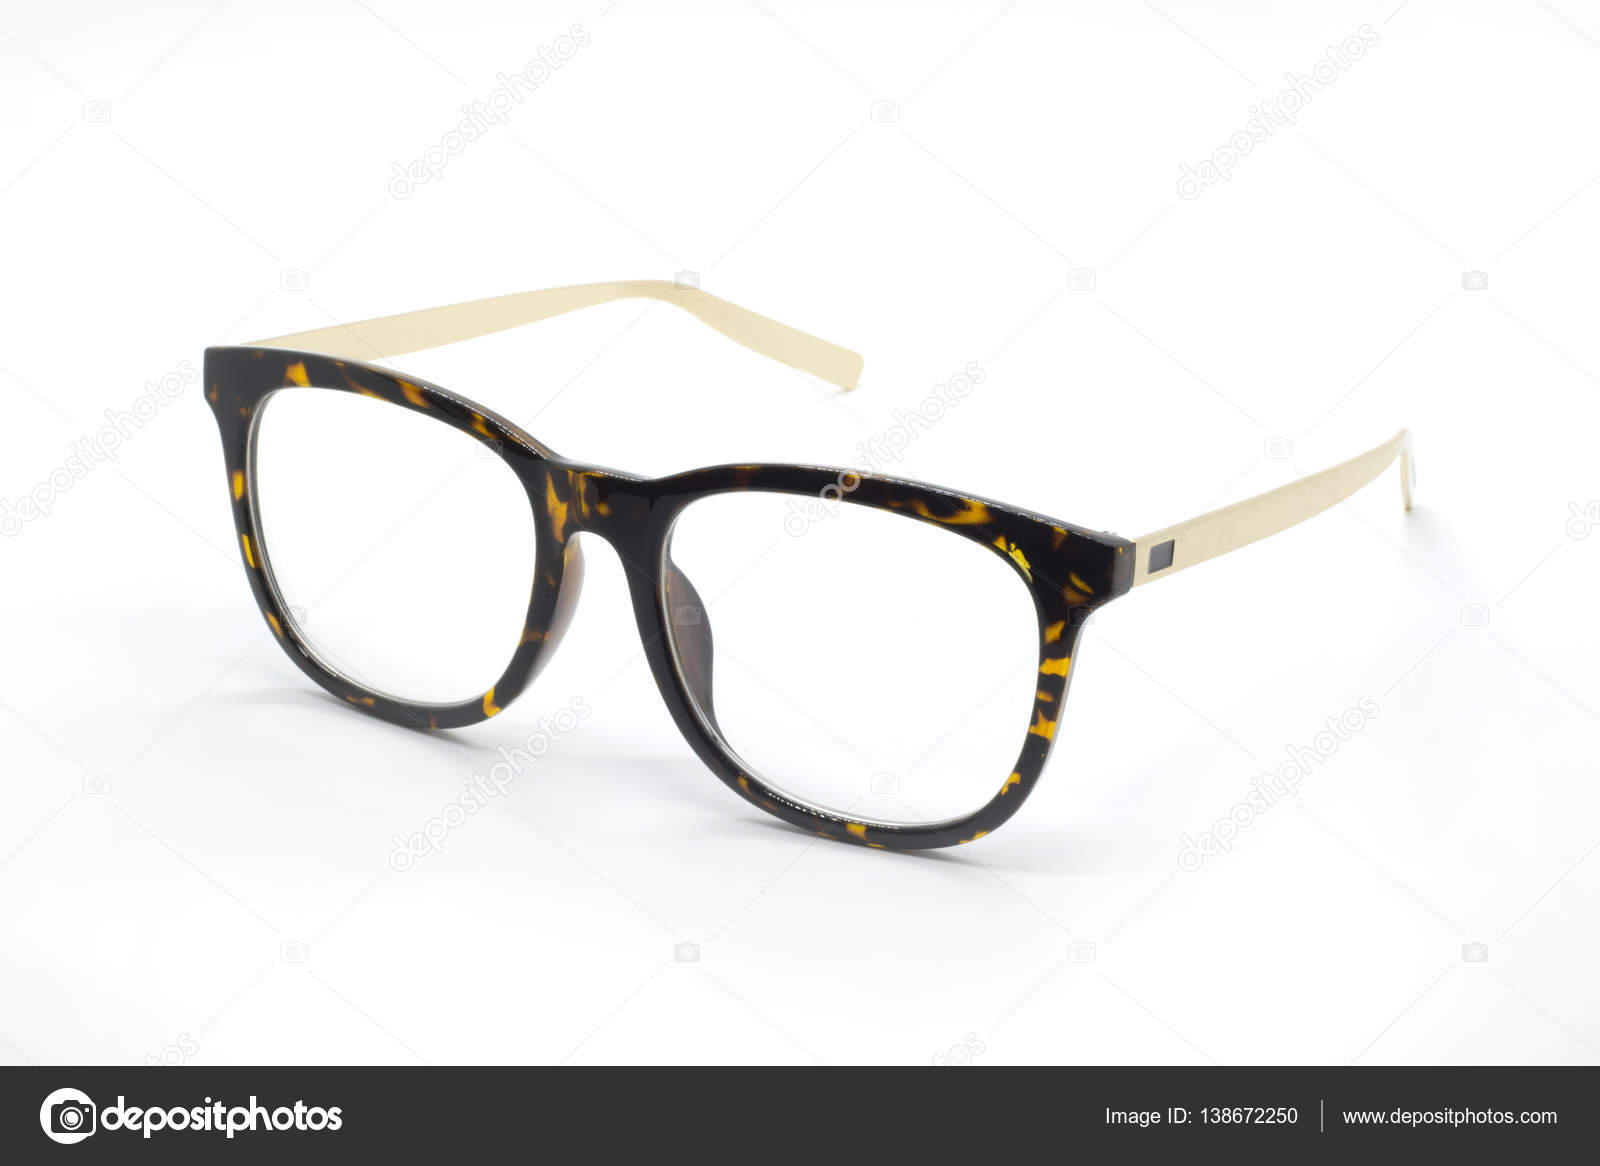 c5cac3a5e375 Modern fashionable spectacles isolated on white background